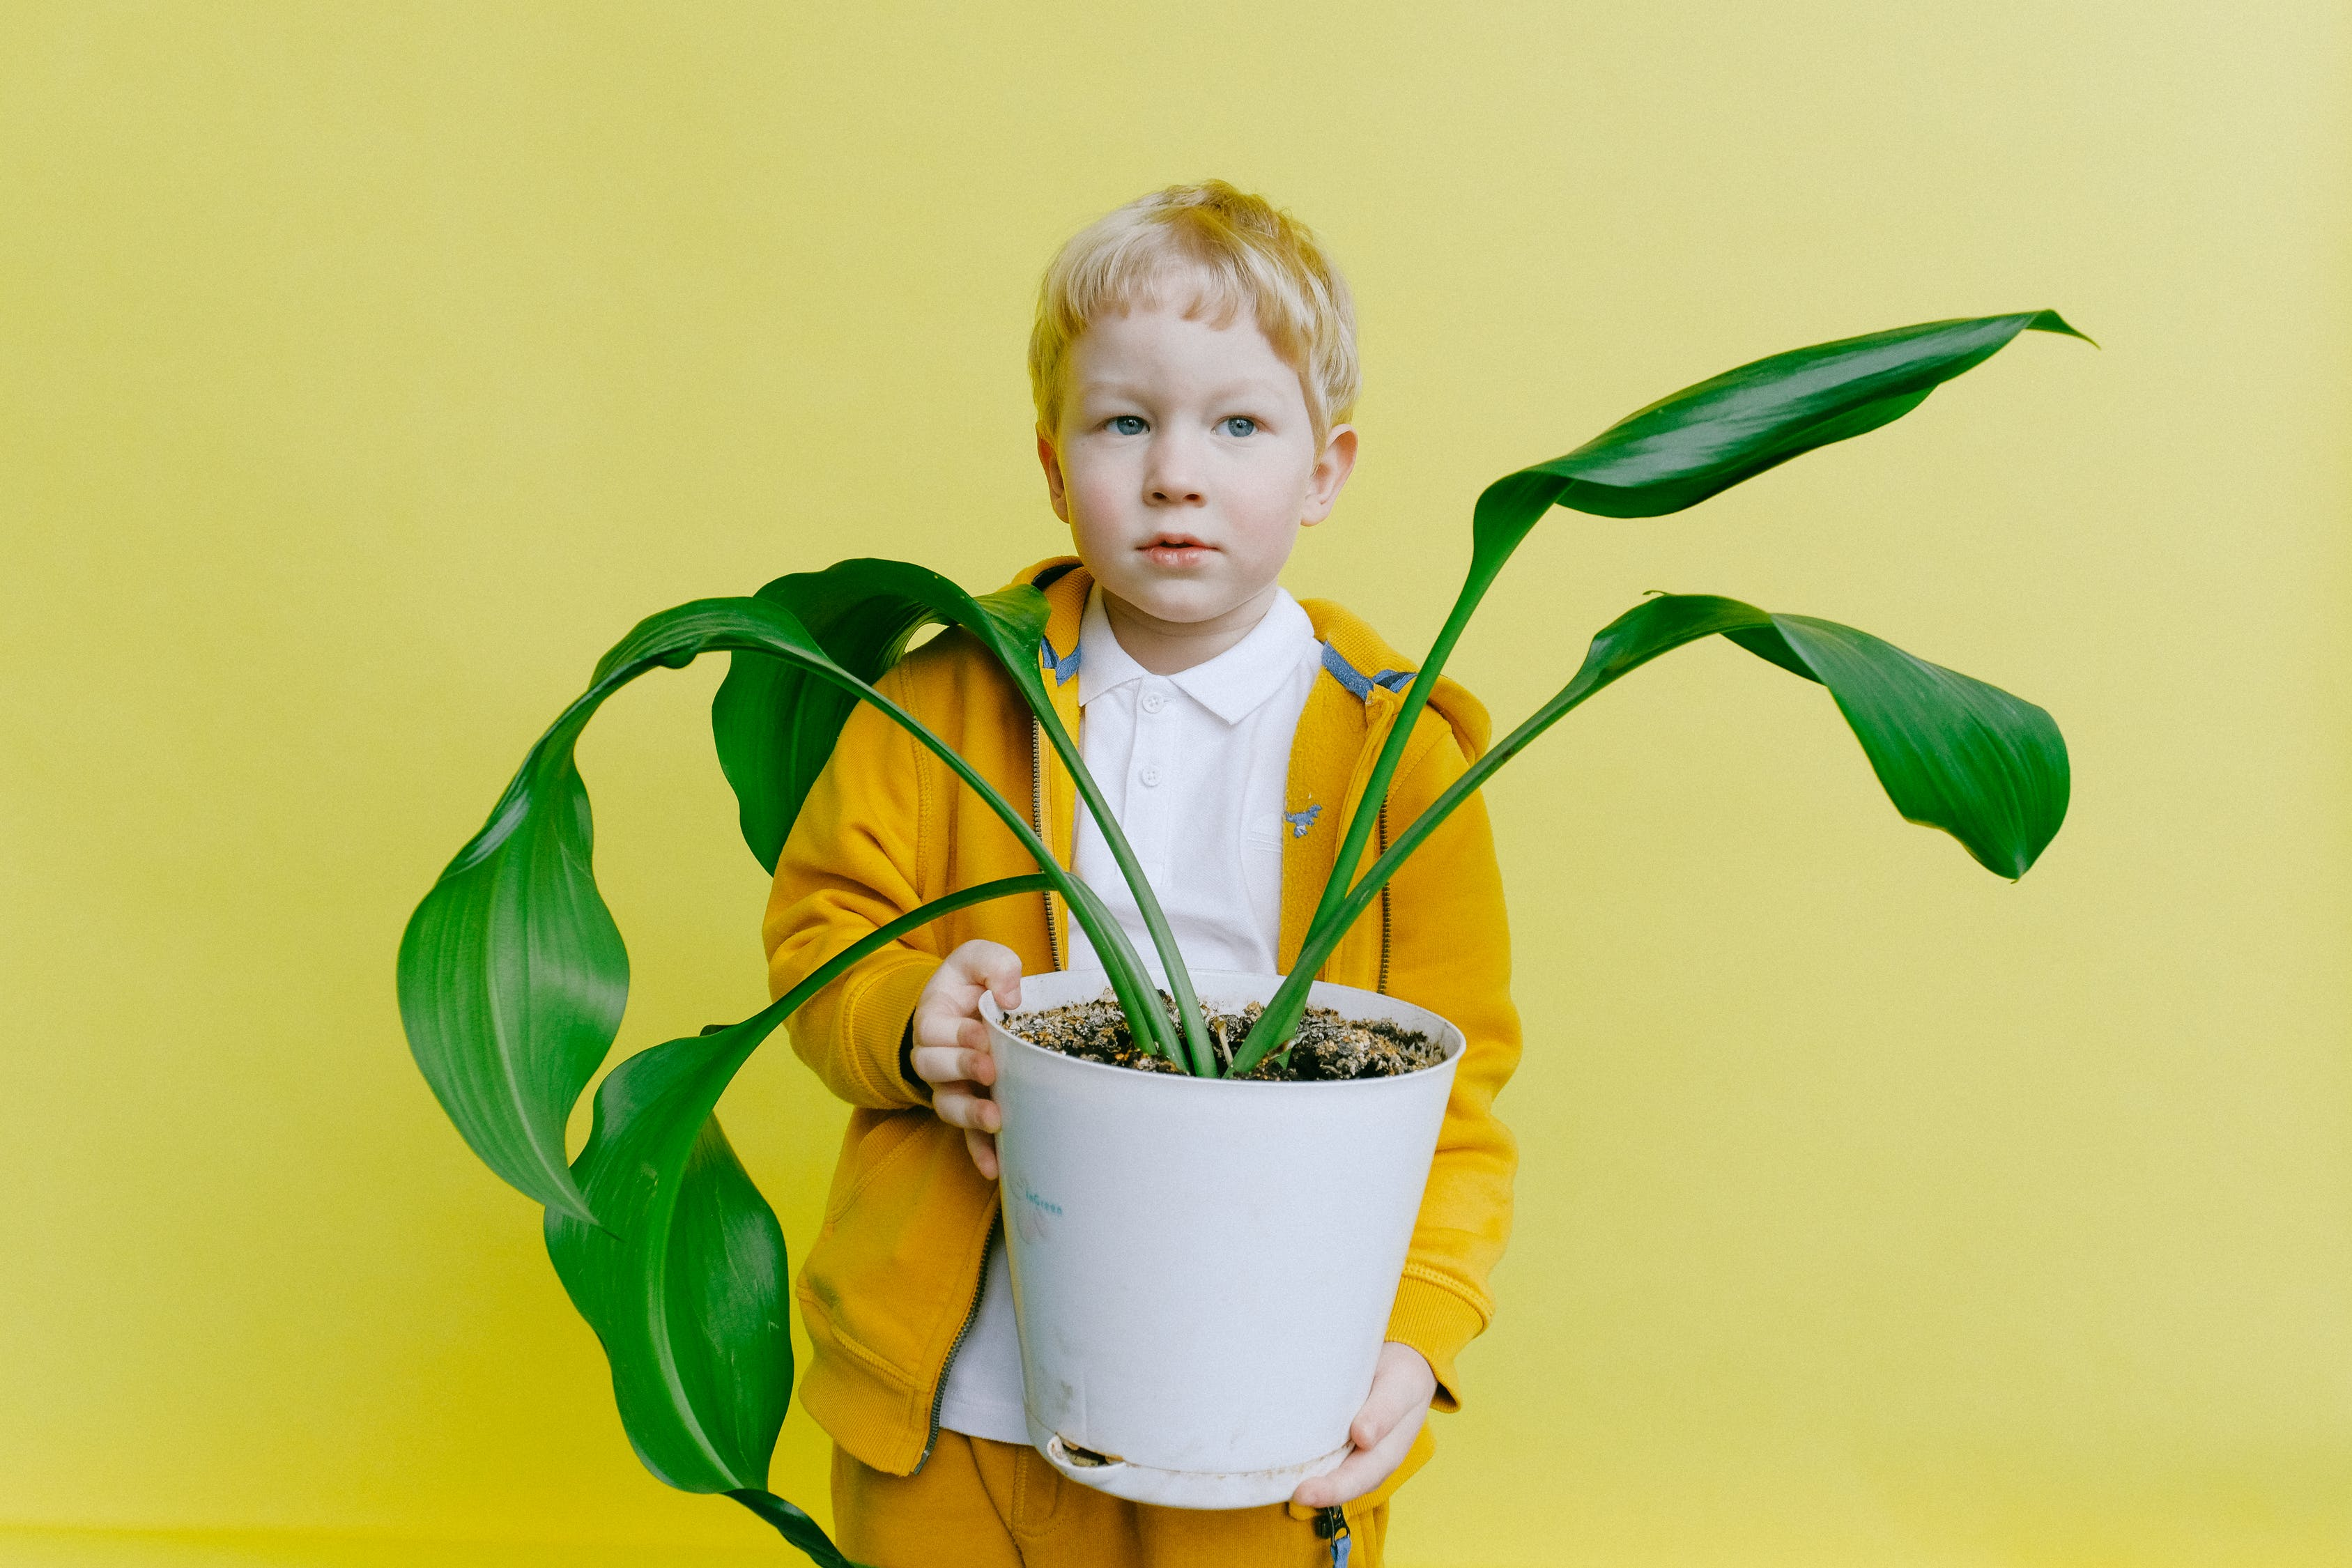 Young Boy in Jacket Holding White Flower Pot